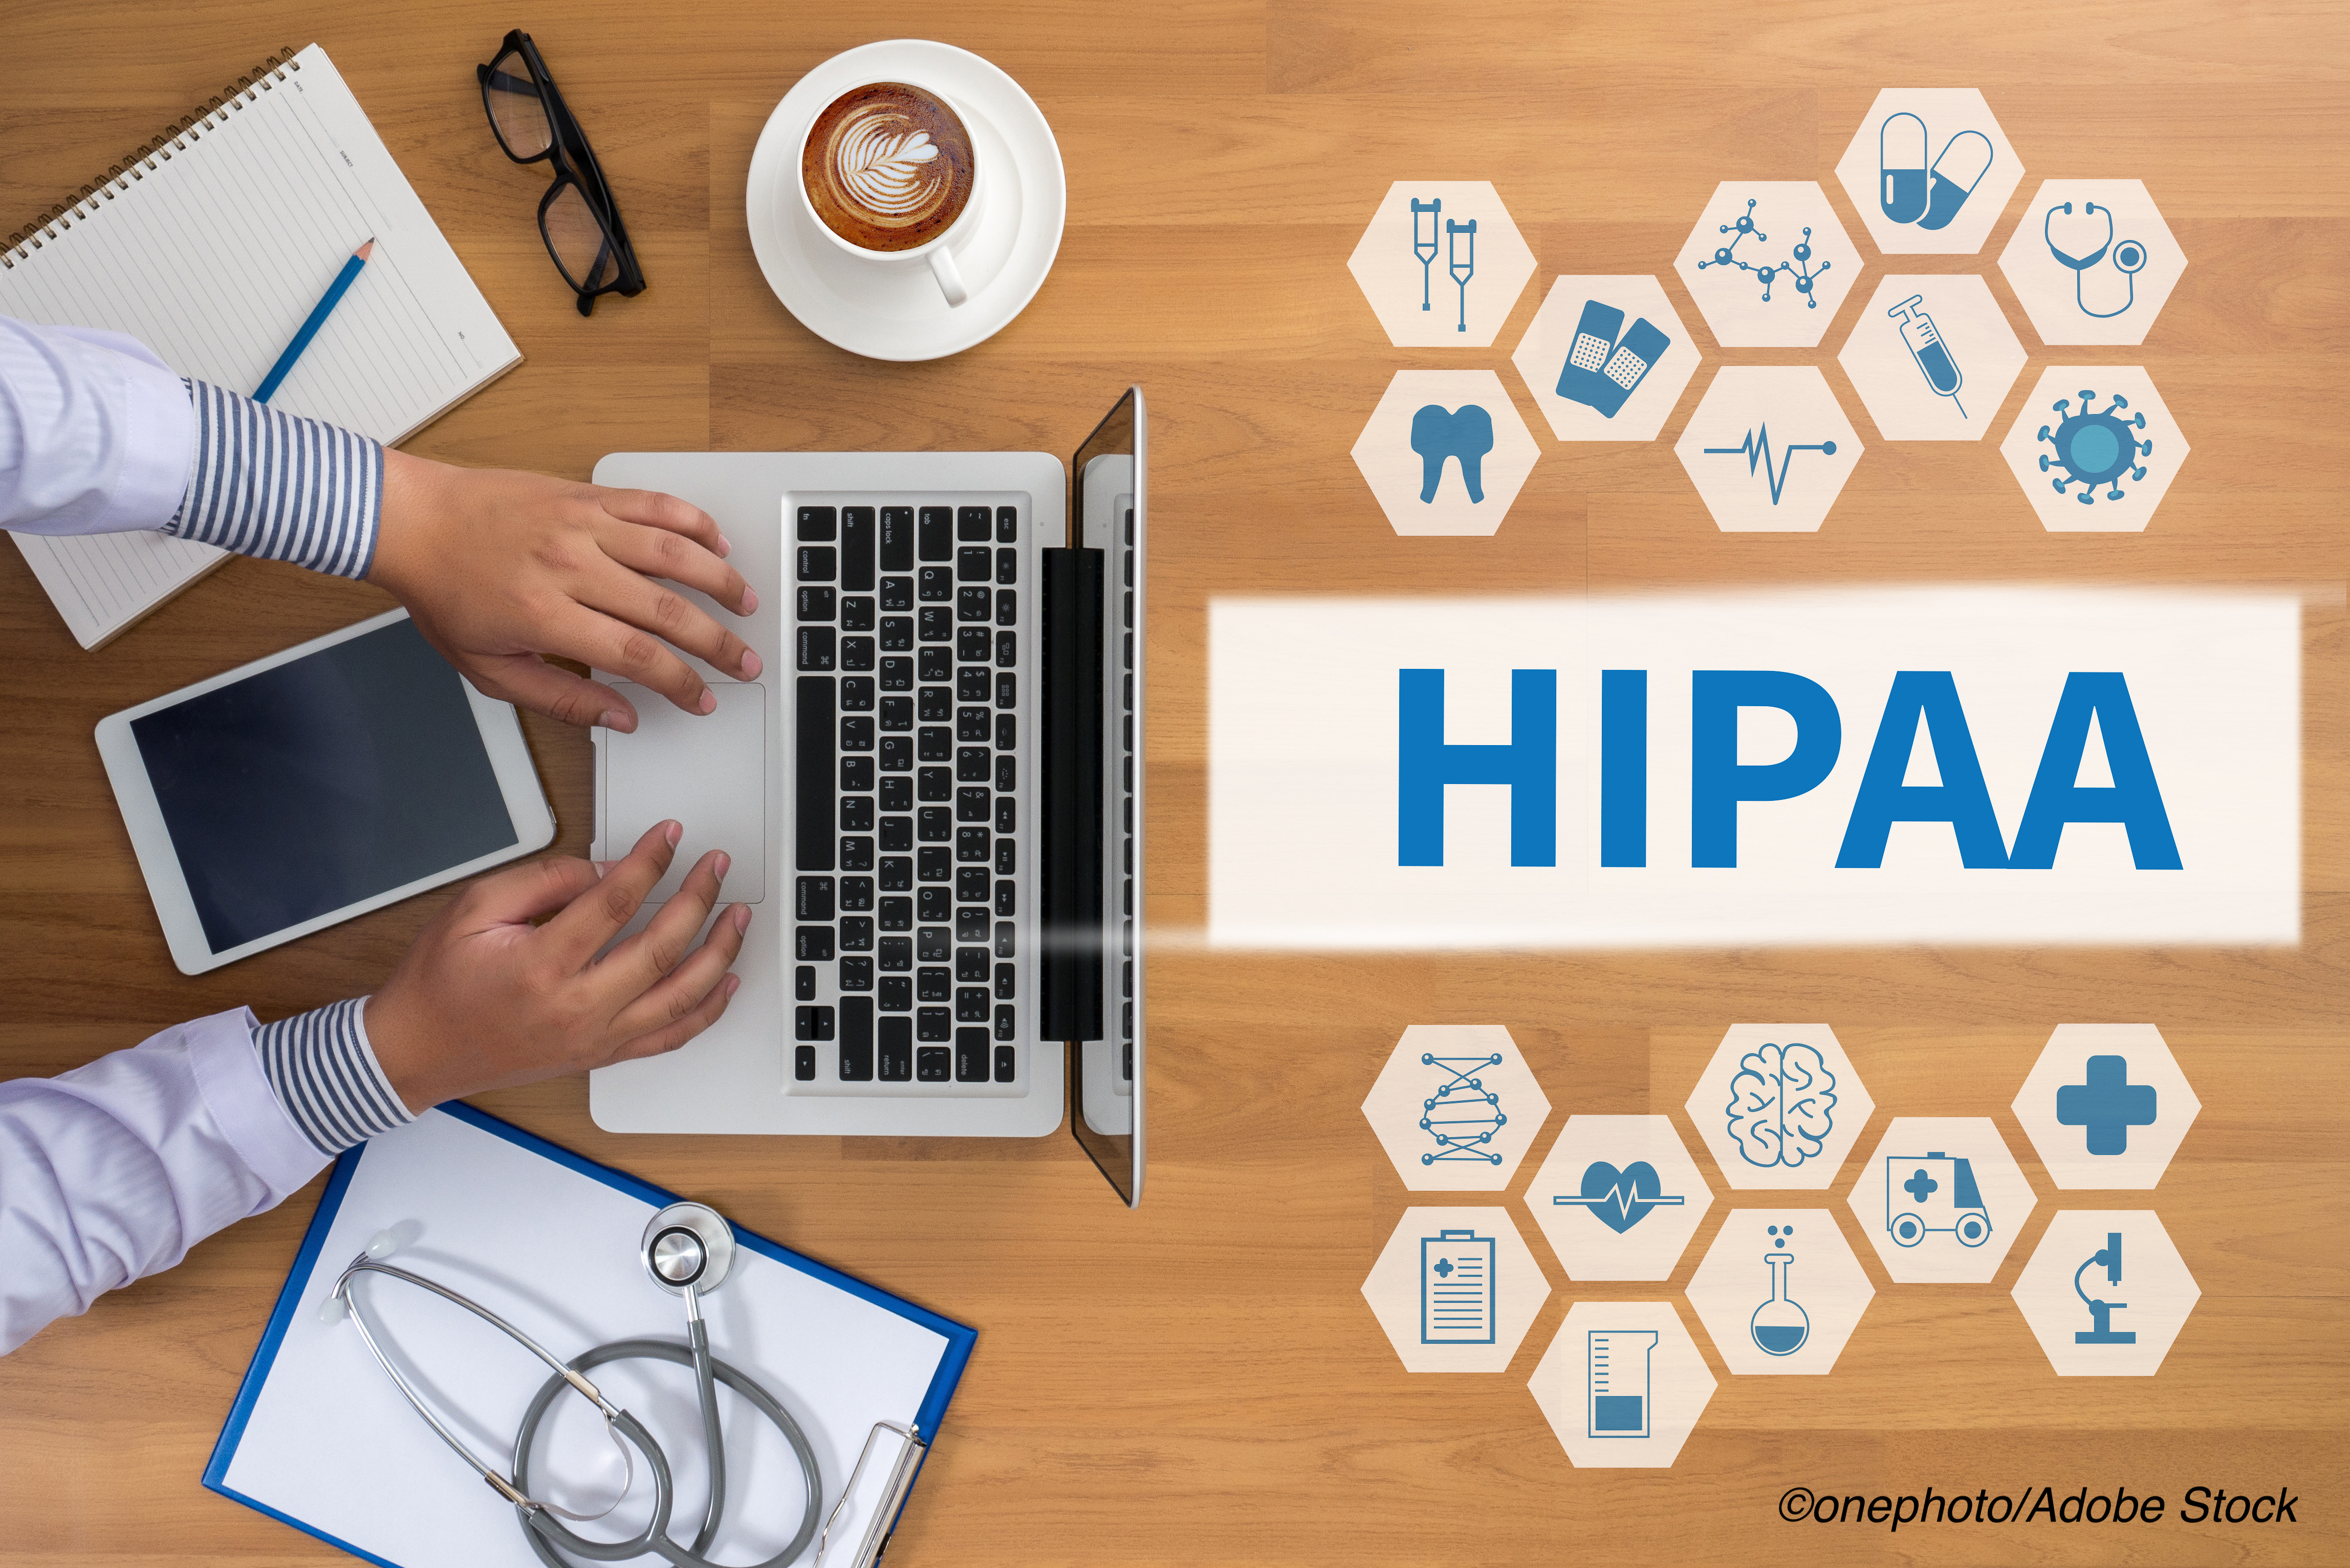 ACP: Taking Health Care Digital Opens Privacy Gaps